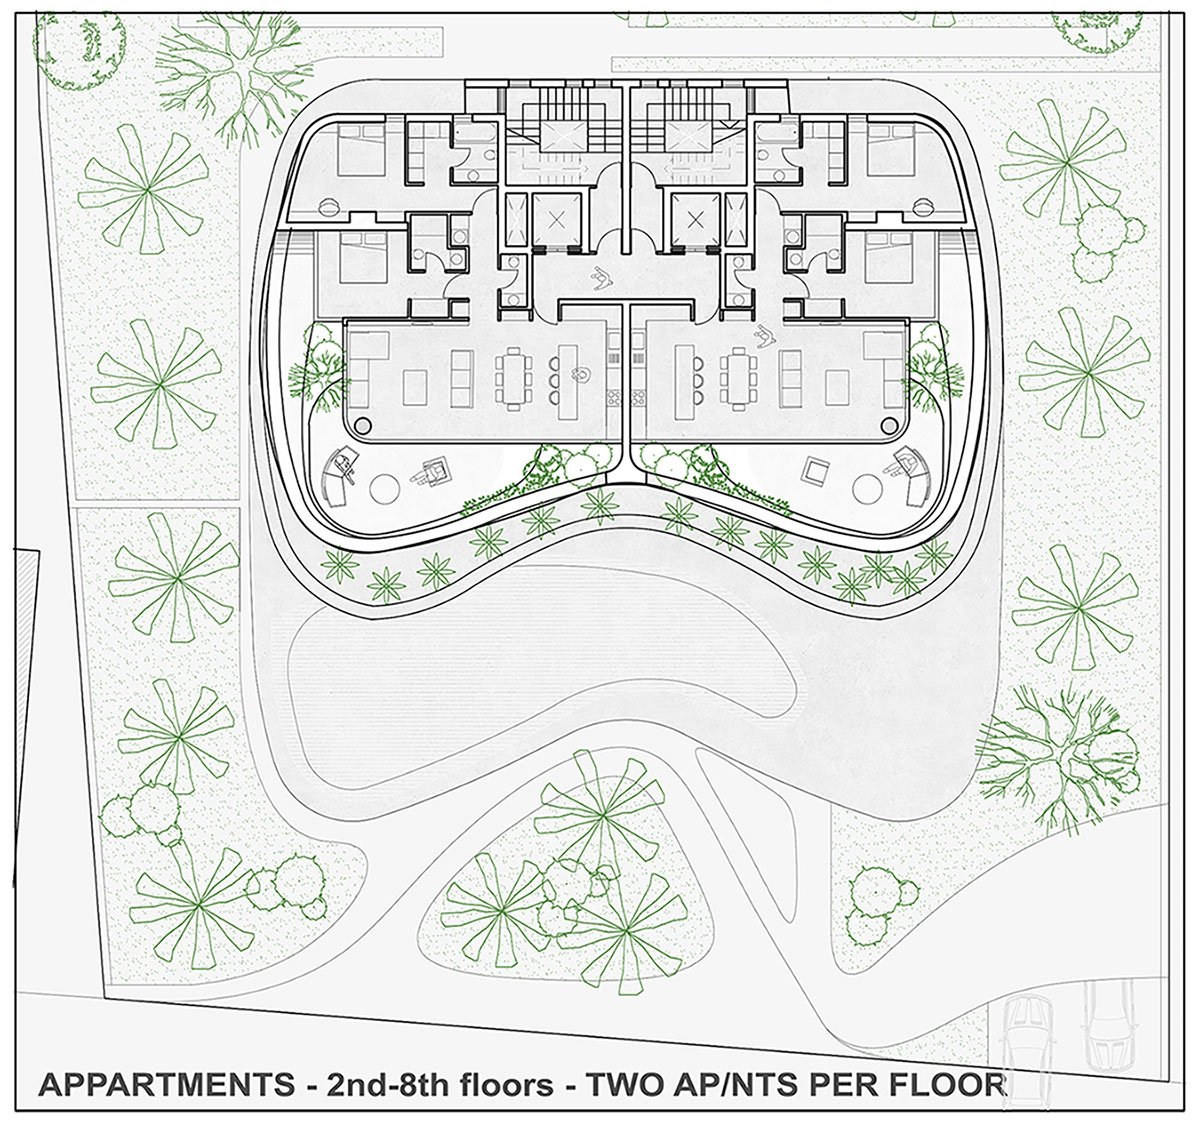 APPARTMENTS - 2nd-8th floors - TWO APNTS PER FLOOR EPArchitects